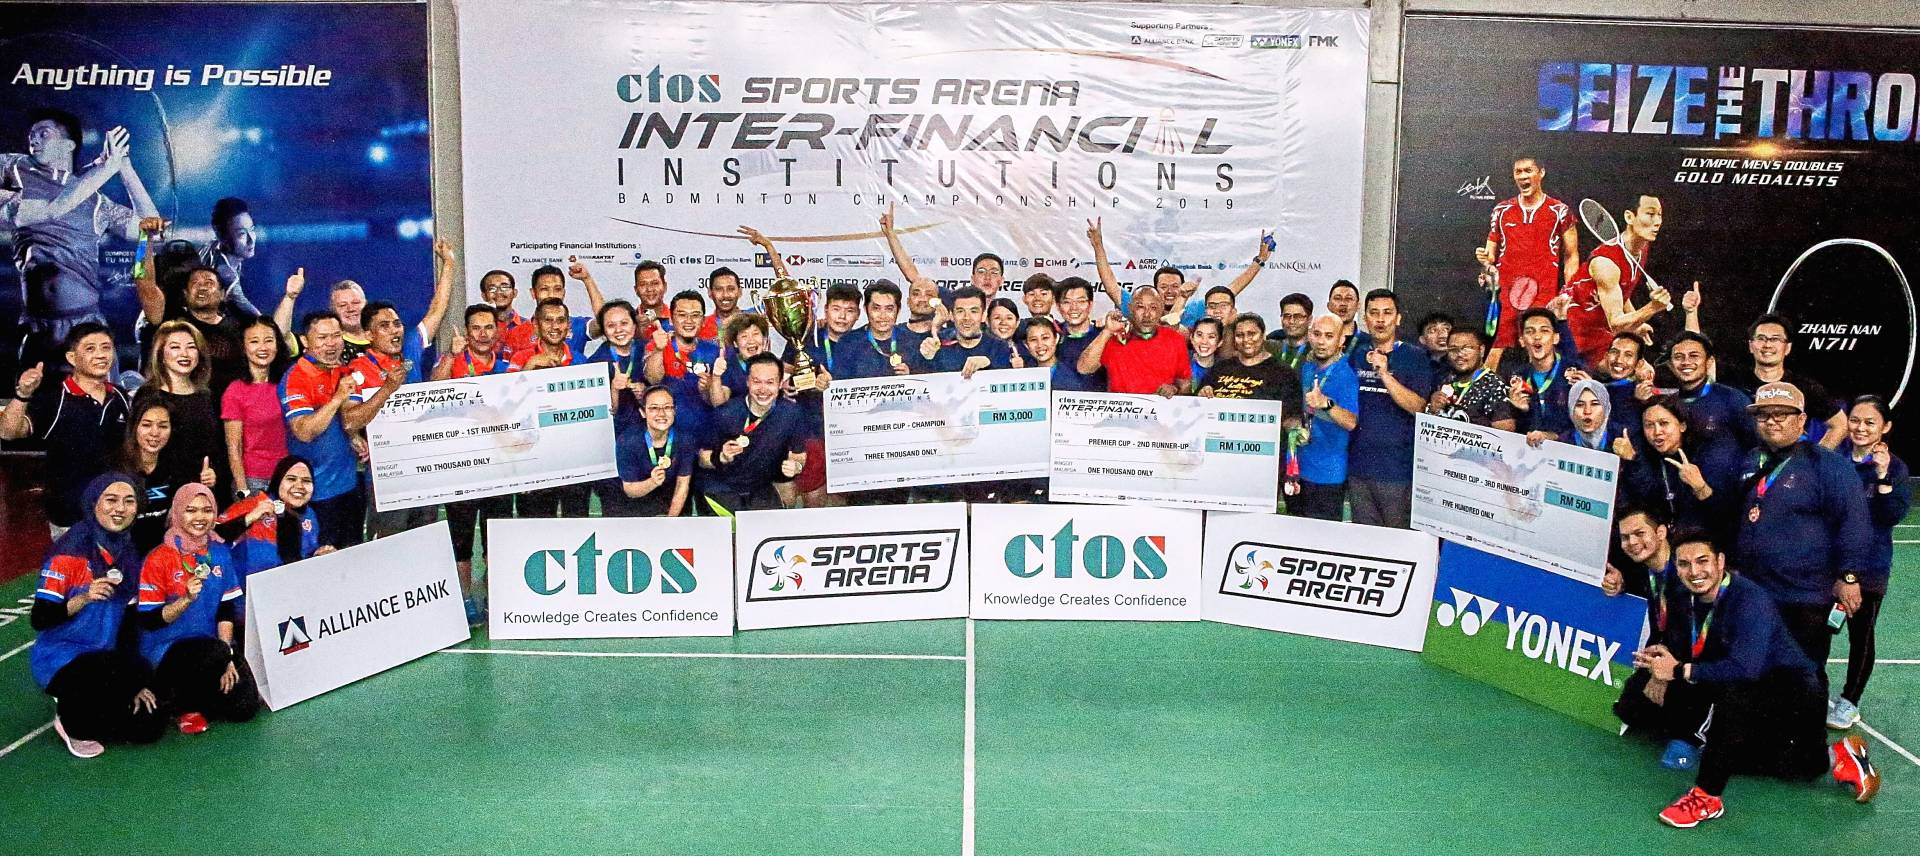 Participants from Alliance Bank Malaysia Bhd, Bank Kerjasama Rakyat Malaysia Bhd, CIMB Bank Bhd, Bank Pertanian Malaysia Bhd (Agrobank), Bank Negara Malaysia and Bank Muamalat Malaysia Bhd at the Inter-Financial Institutions Badminton Championship 2019 hosted by CTOS Data Systems Sdn Bhd at Sports Arena Puchong. — Photos: SS KANESAN/The Star